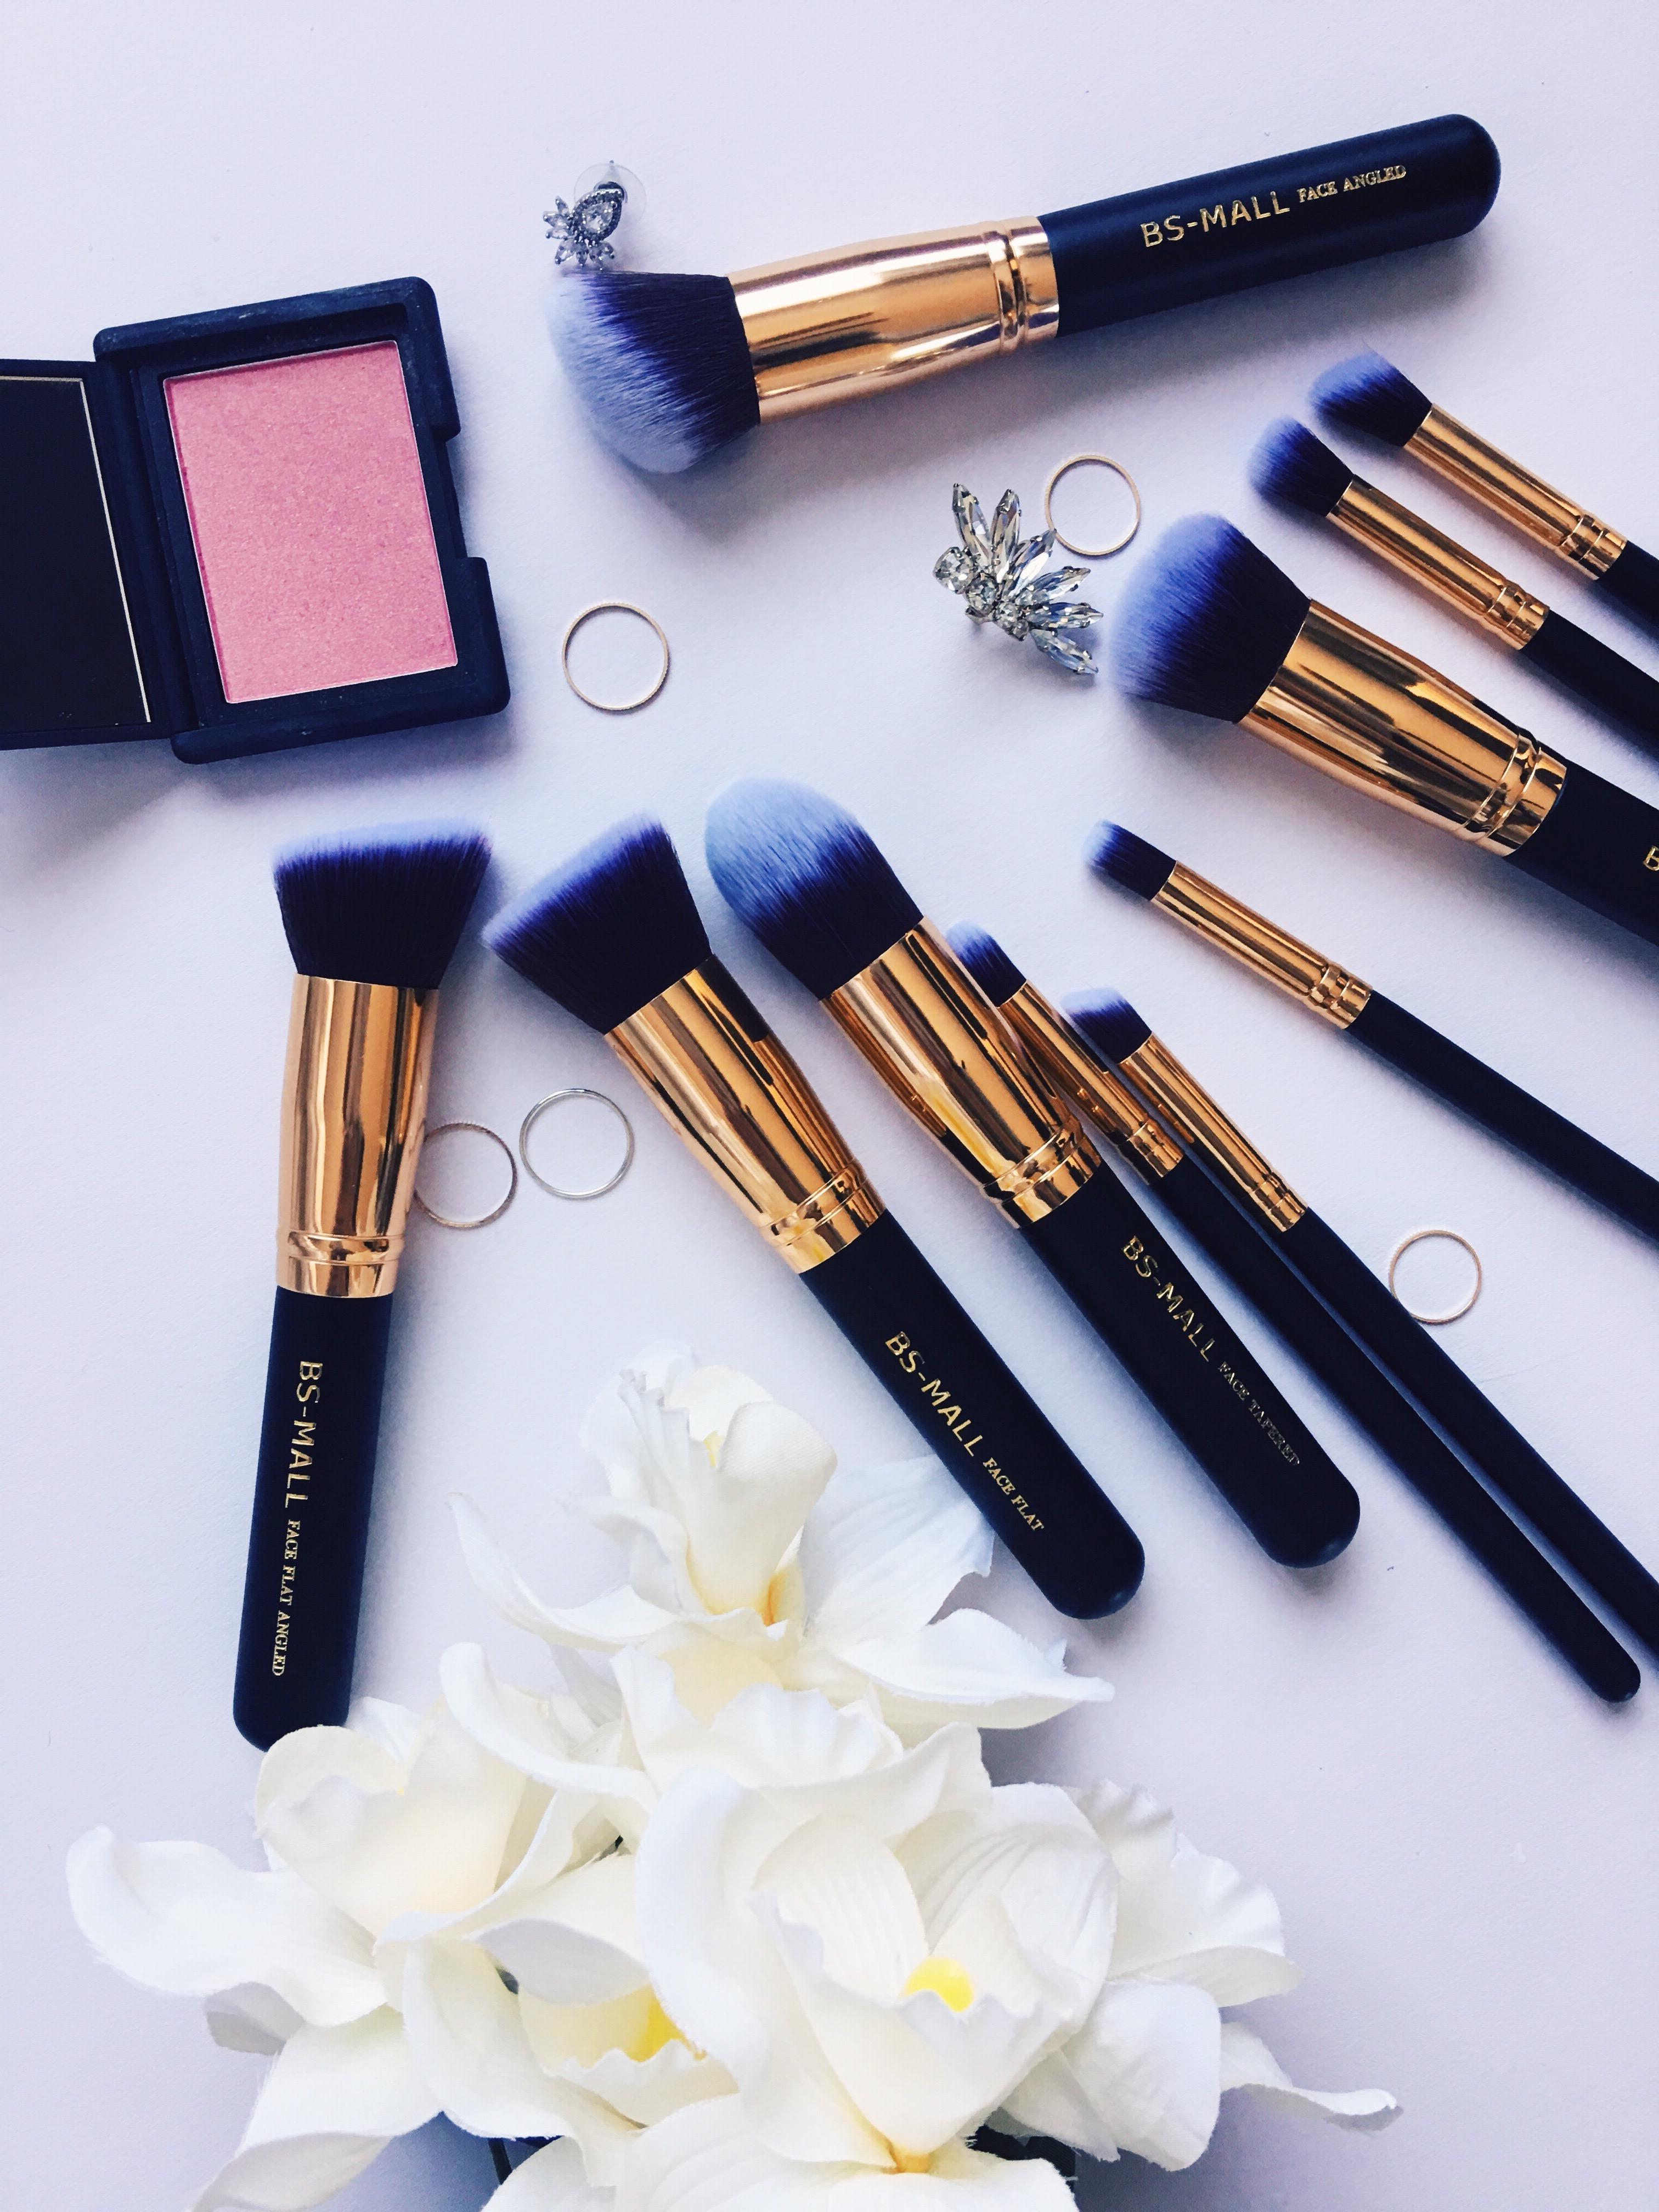 Drea Marie shares what types of makeup brushes you actually need! No more staring aimlessly at Sephora's 100+ kinds. CLICK HERE.